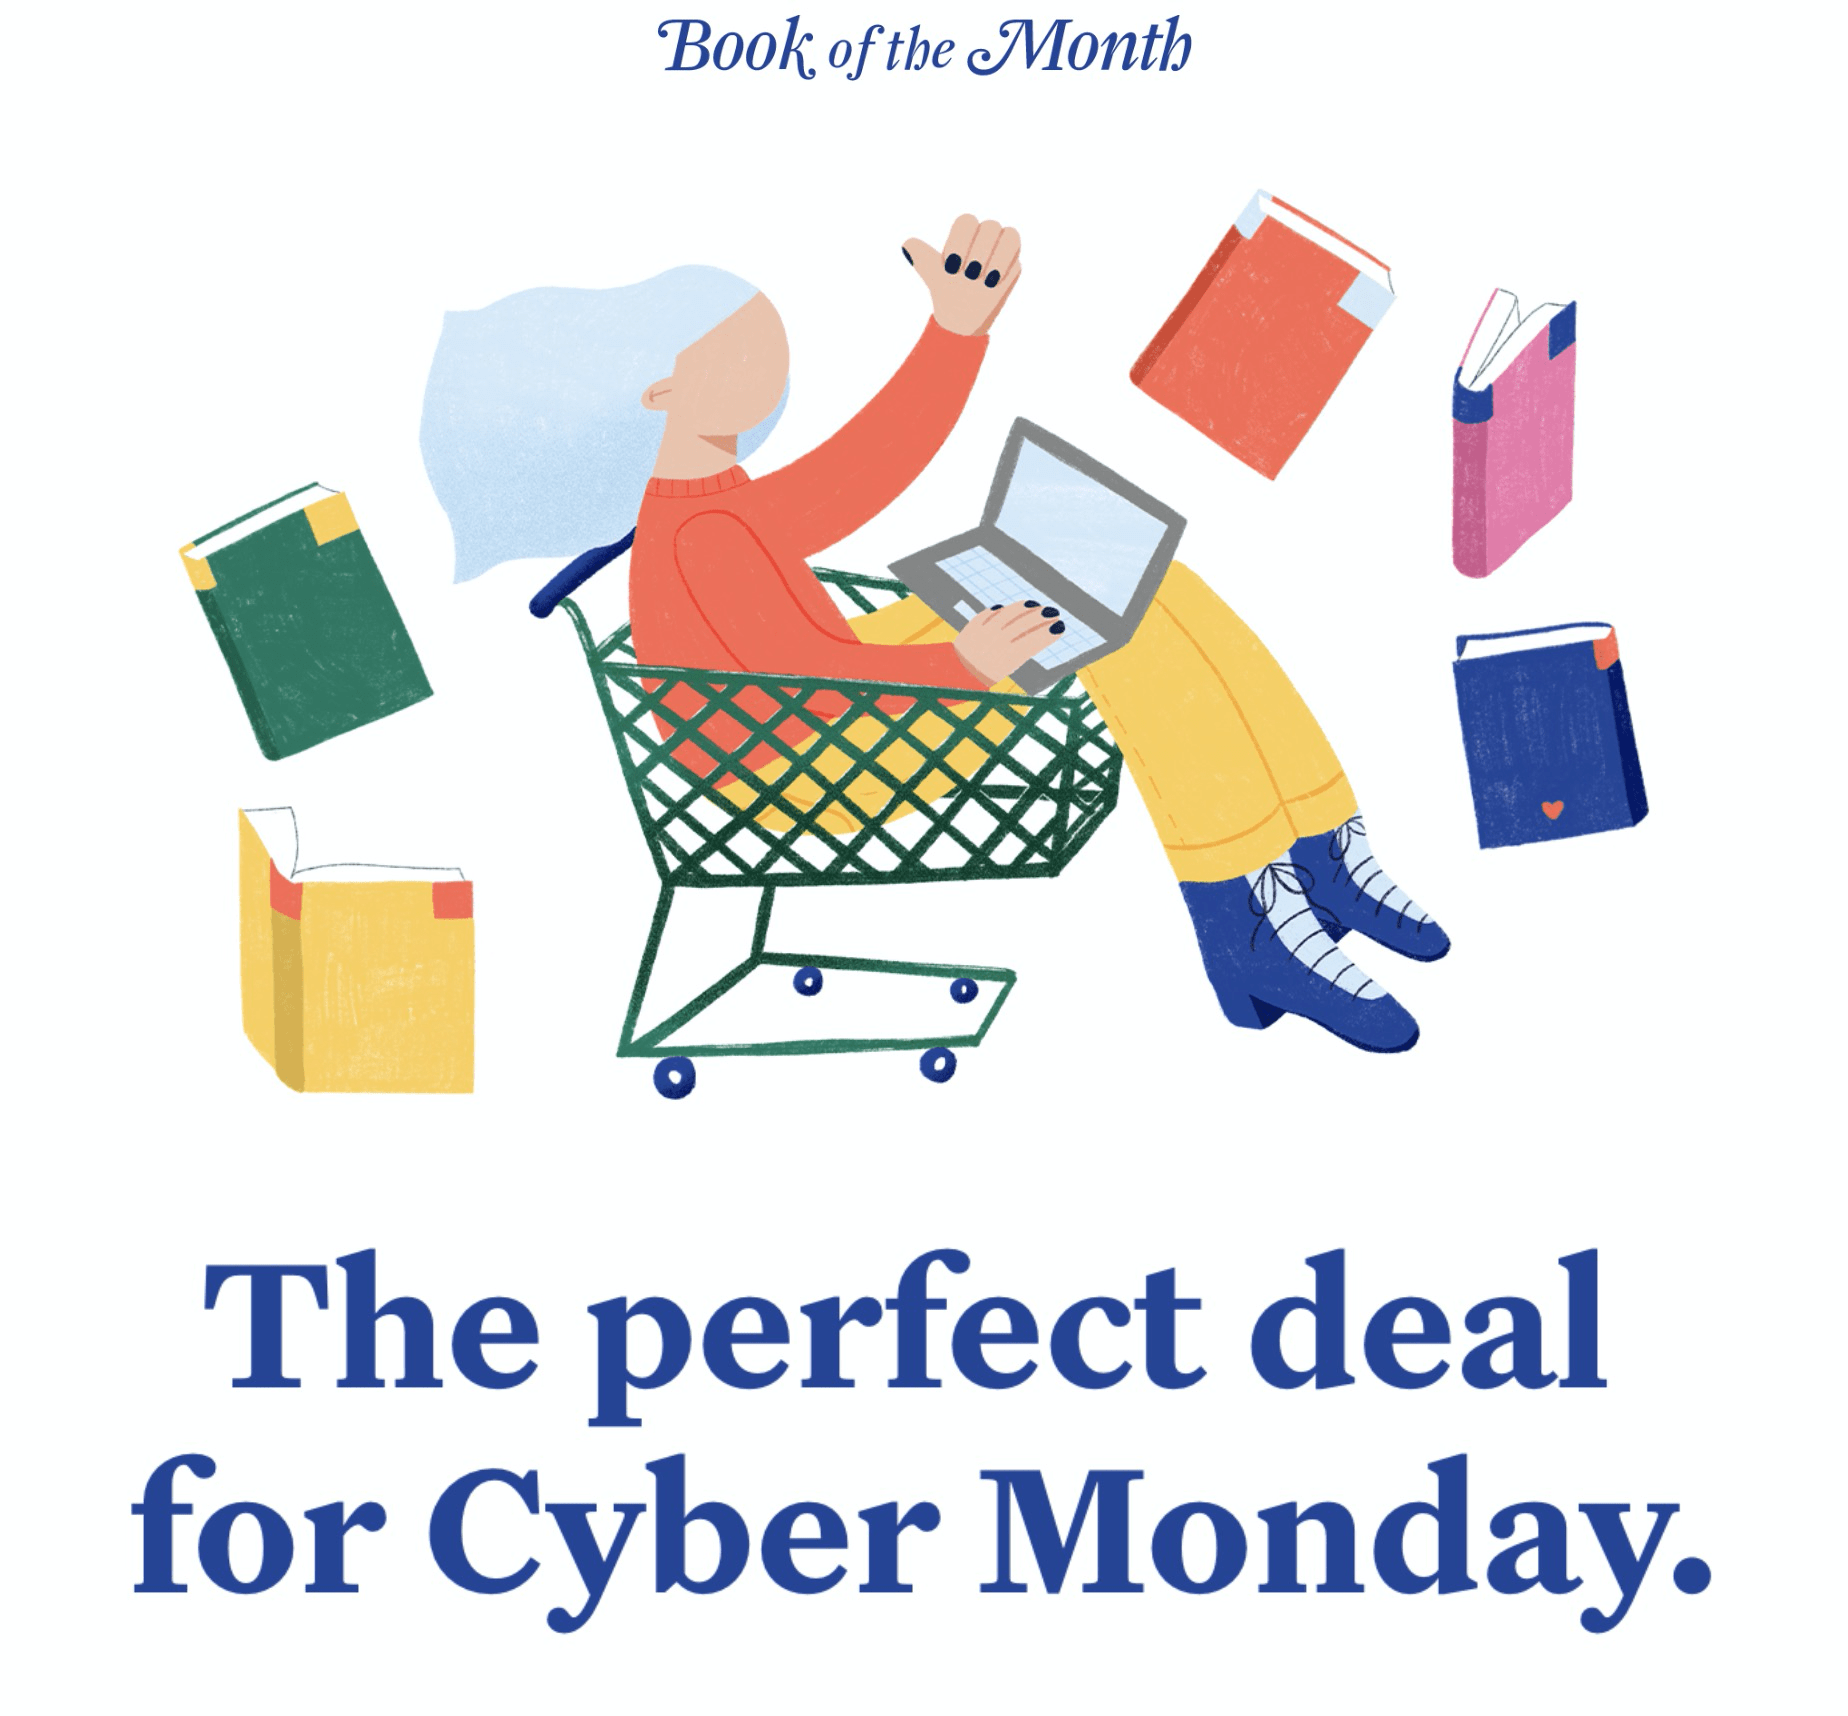 Book of the Month Holiday Coupon: Save $10 on 6+ Month Gifts!